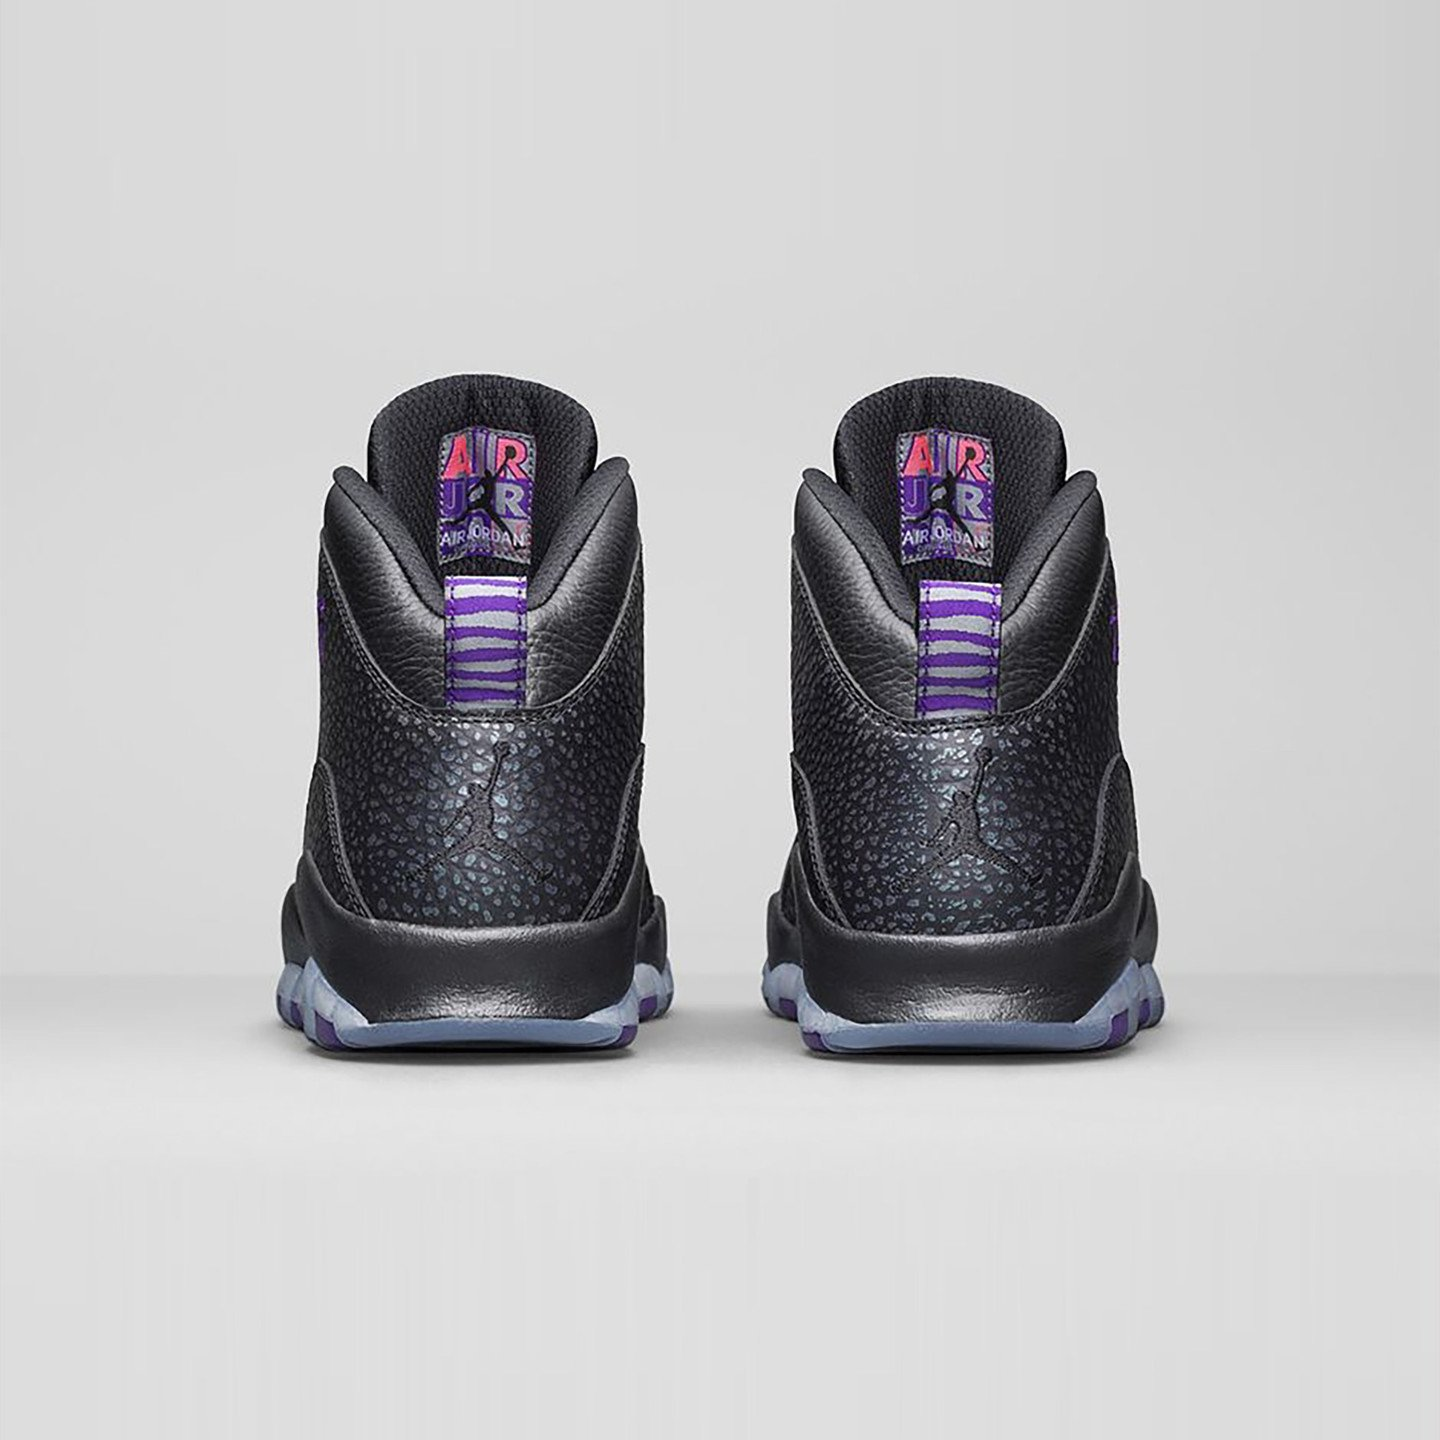 Jordan Air Jordan 10 Retro 'Paris' Black / Fierce Purple 310805-018-44.5